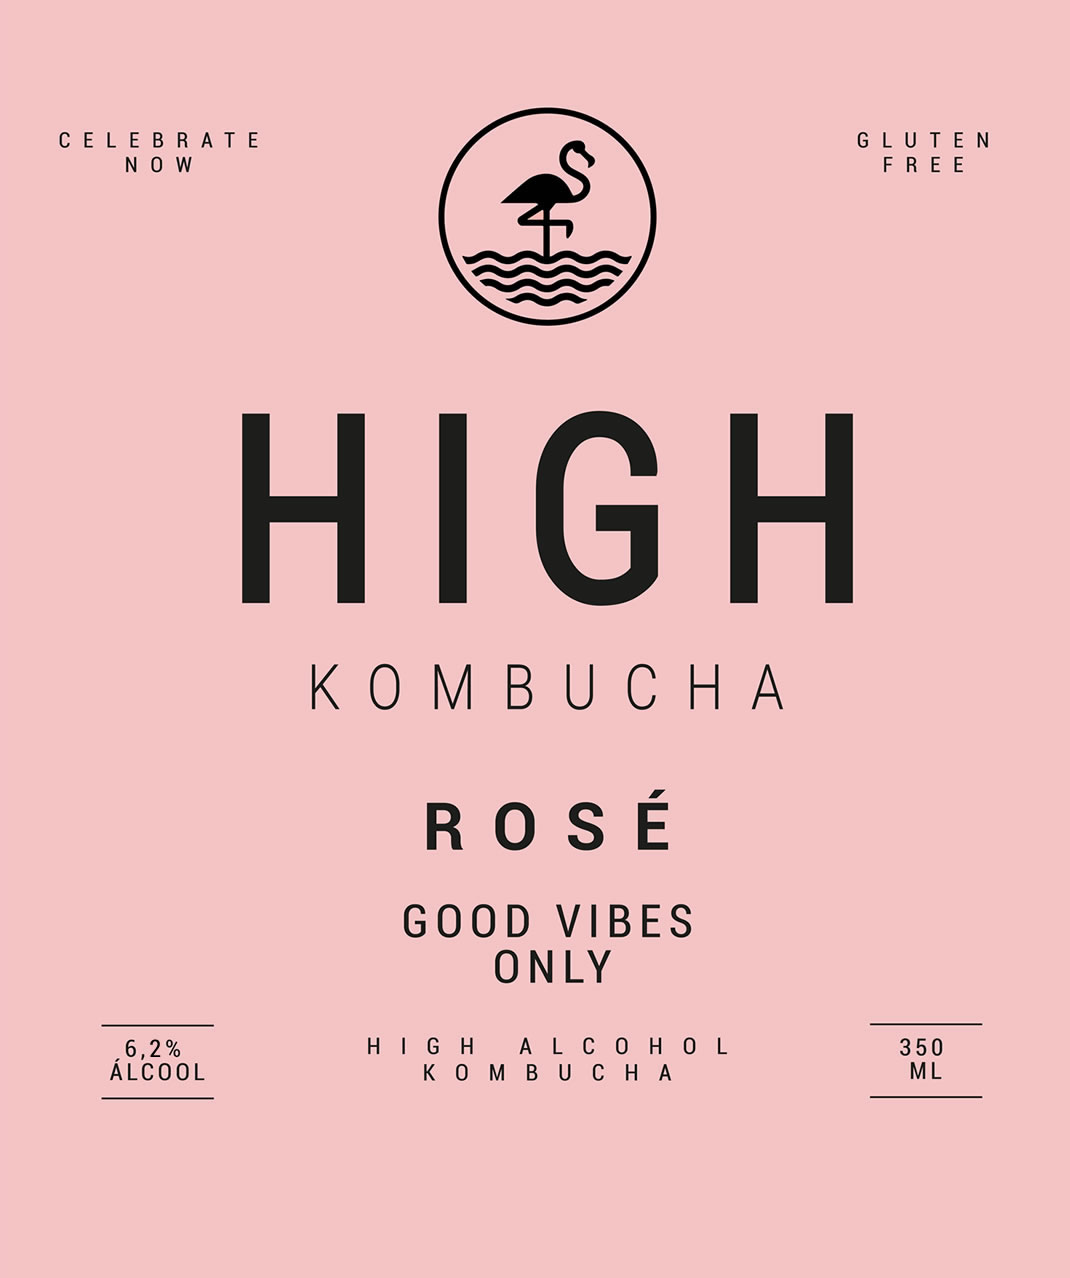 High Kombucha